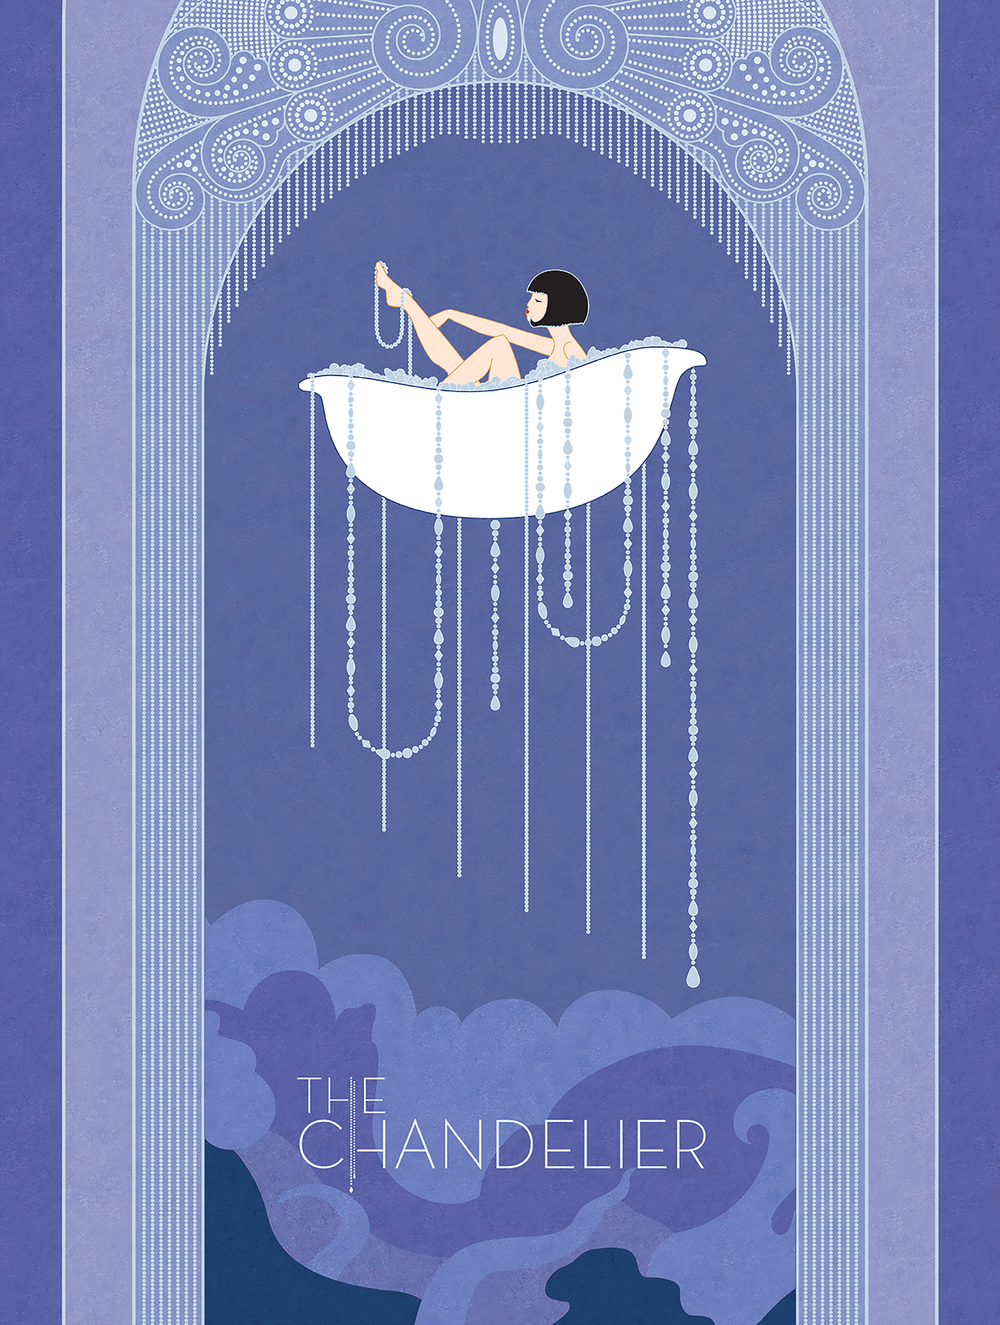 COSMO_Chandelier_Bathtub_02.png